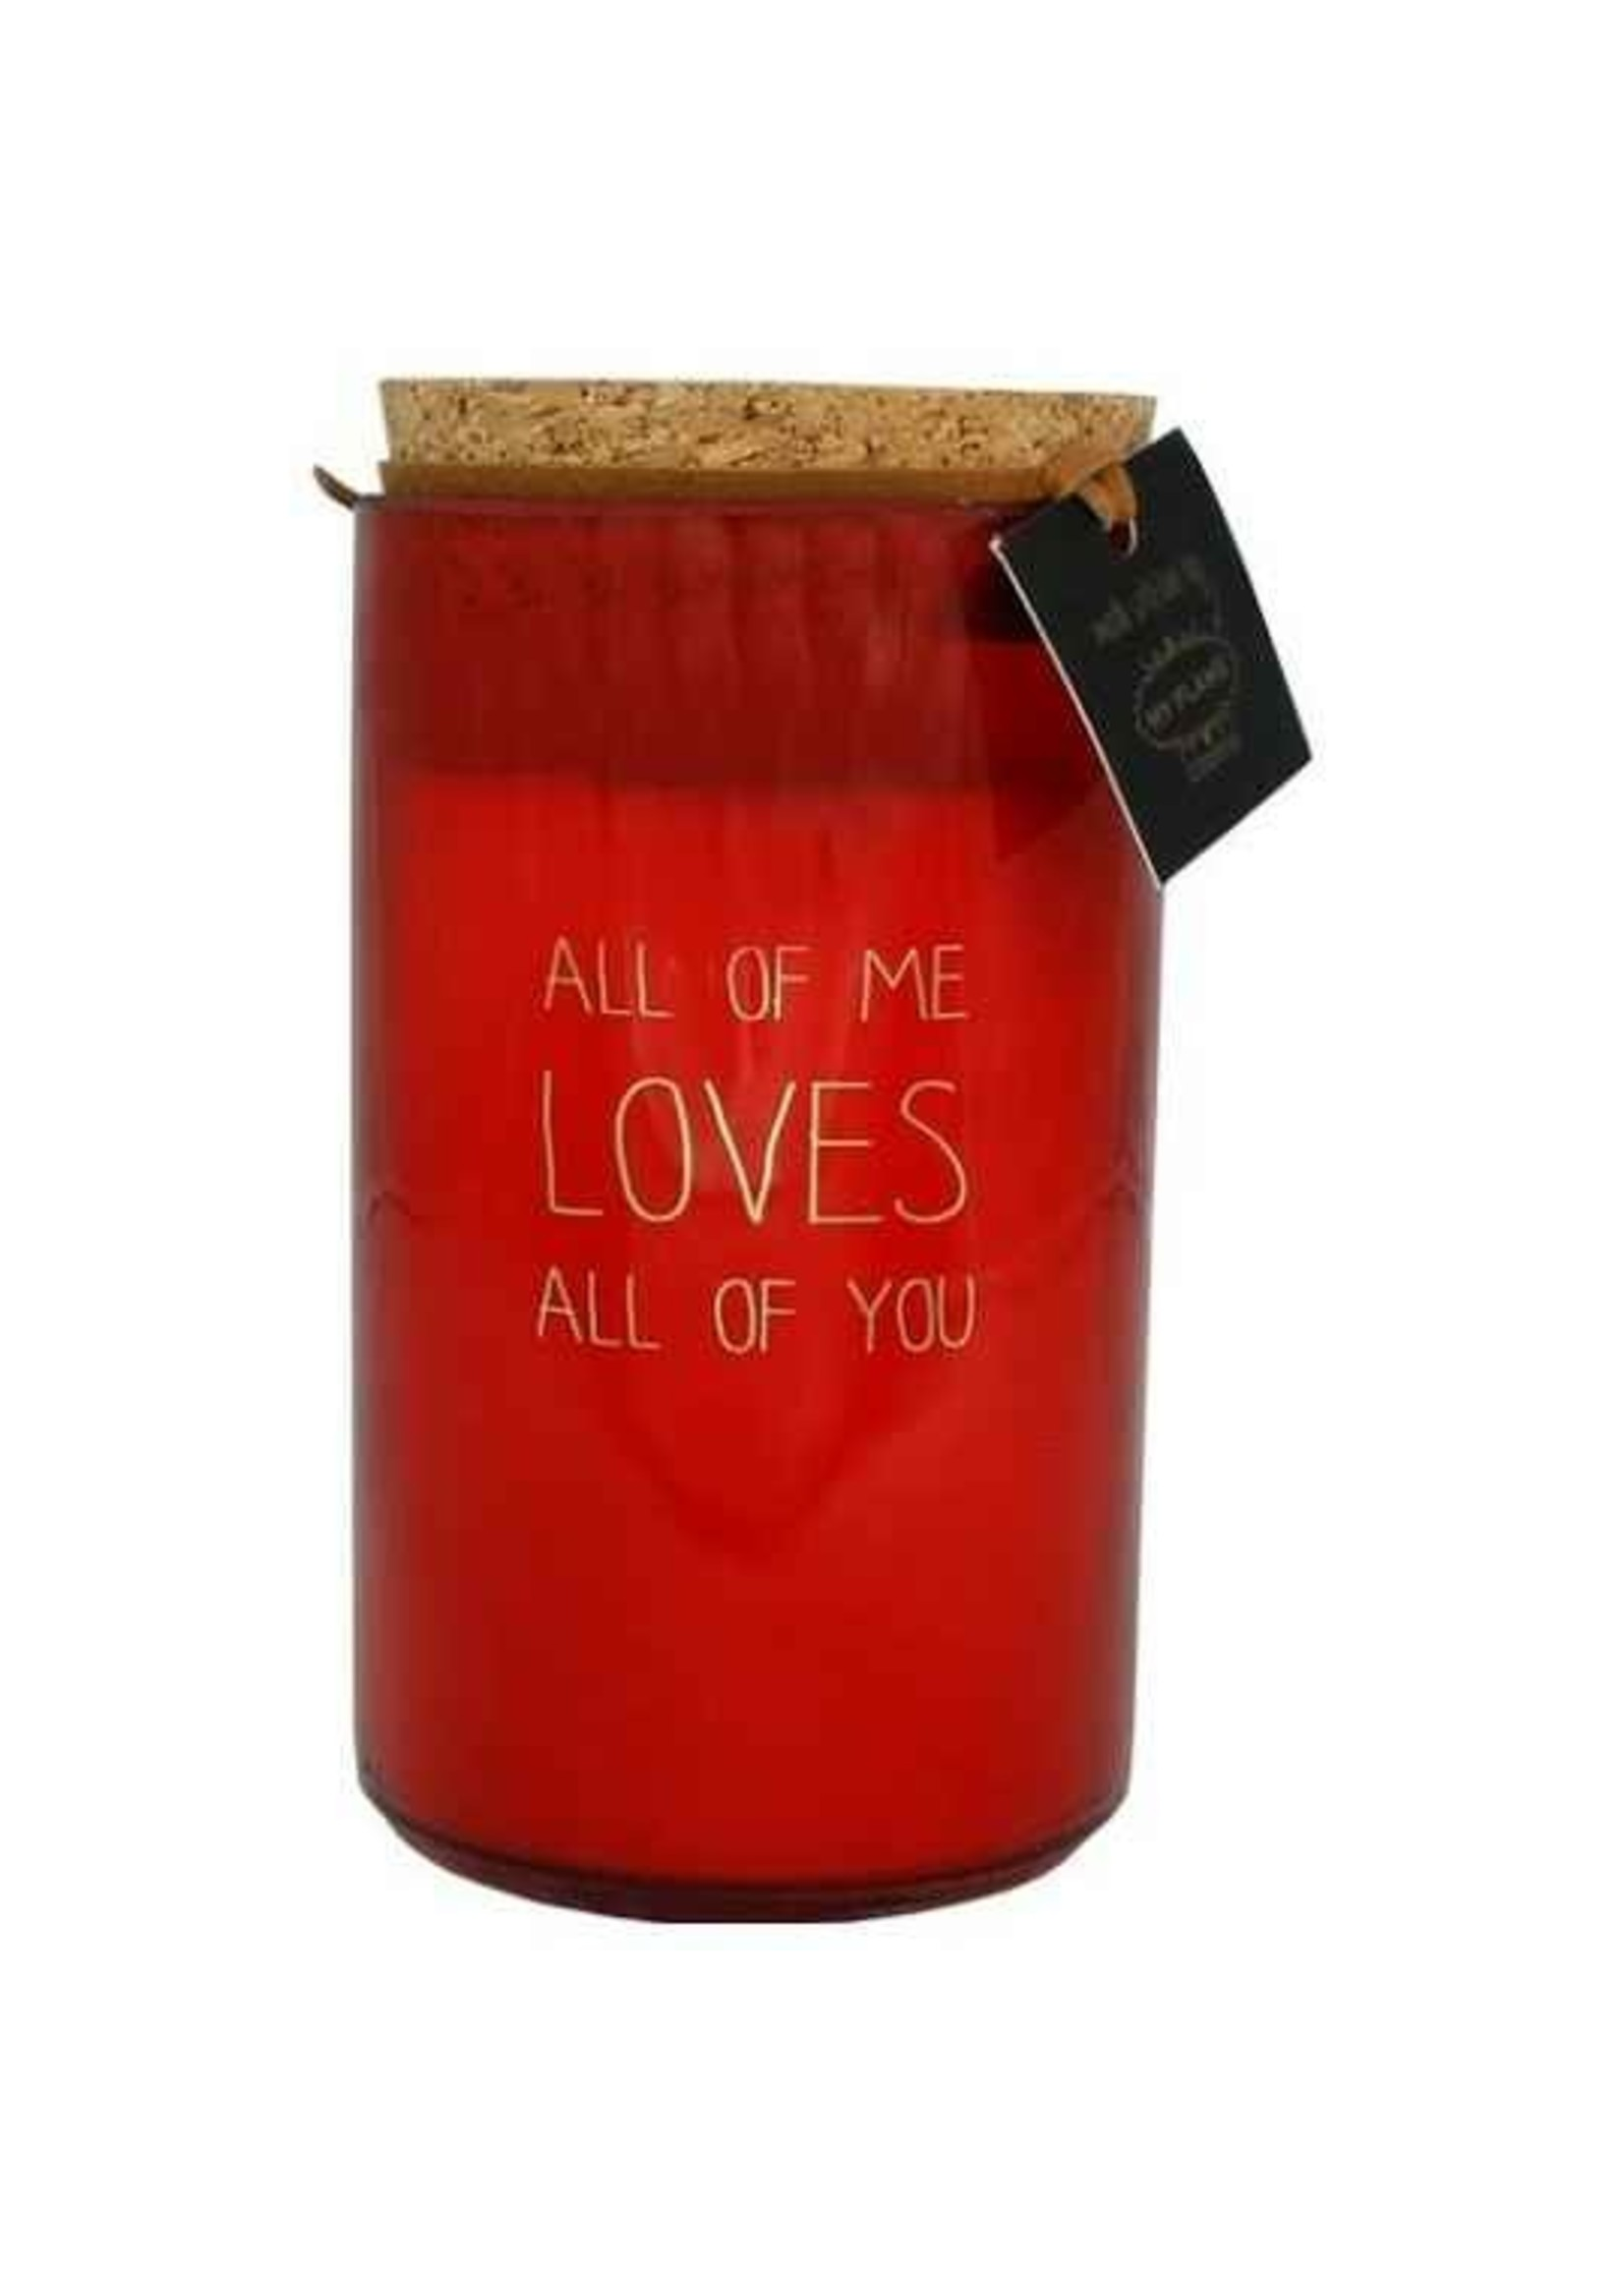 My Flame Geurkaars All of me loves all of you